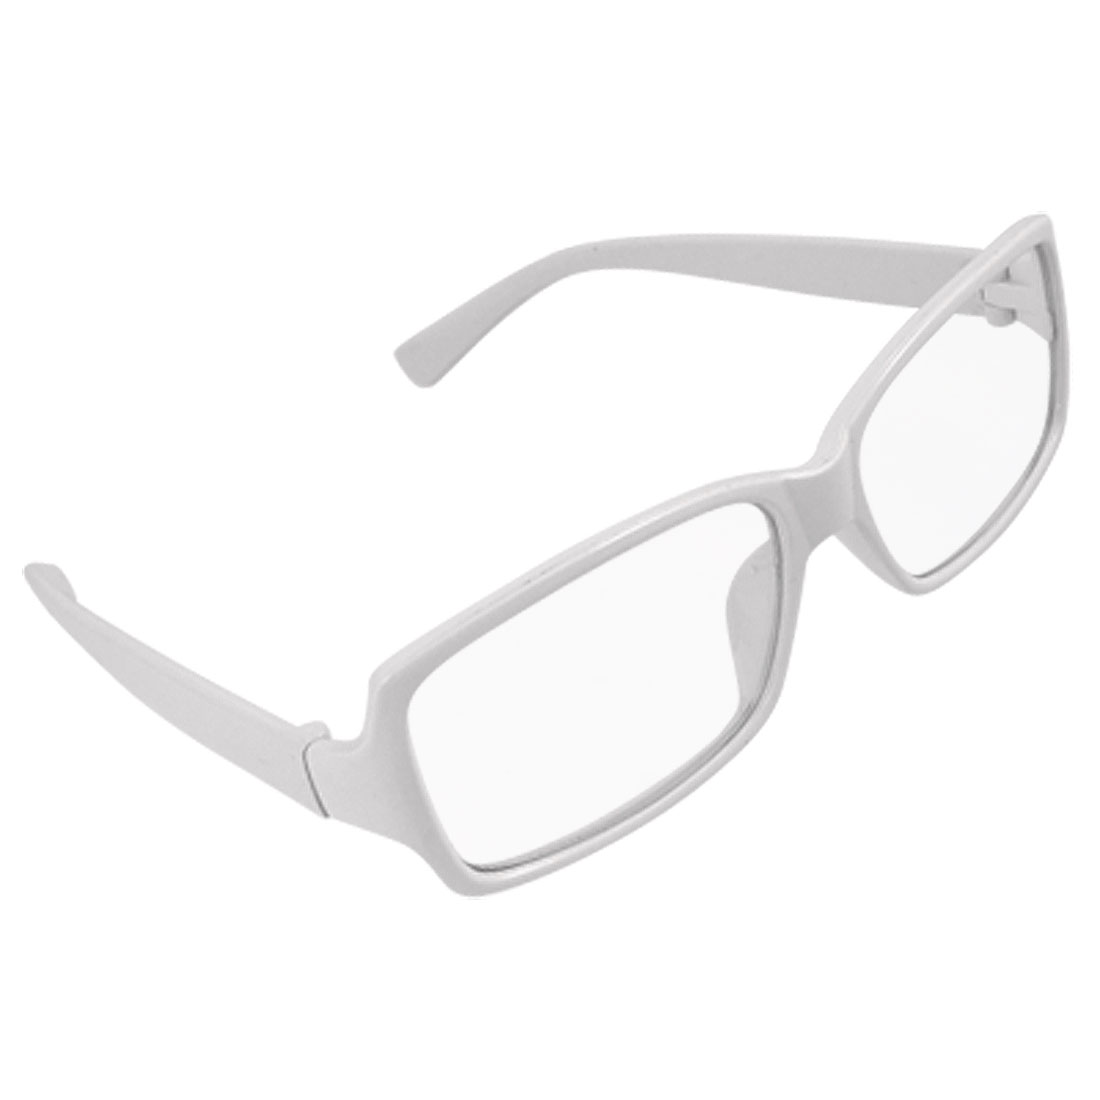 My Glasses Frames Are Turning White : Gallery For > White Glasses